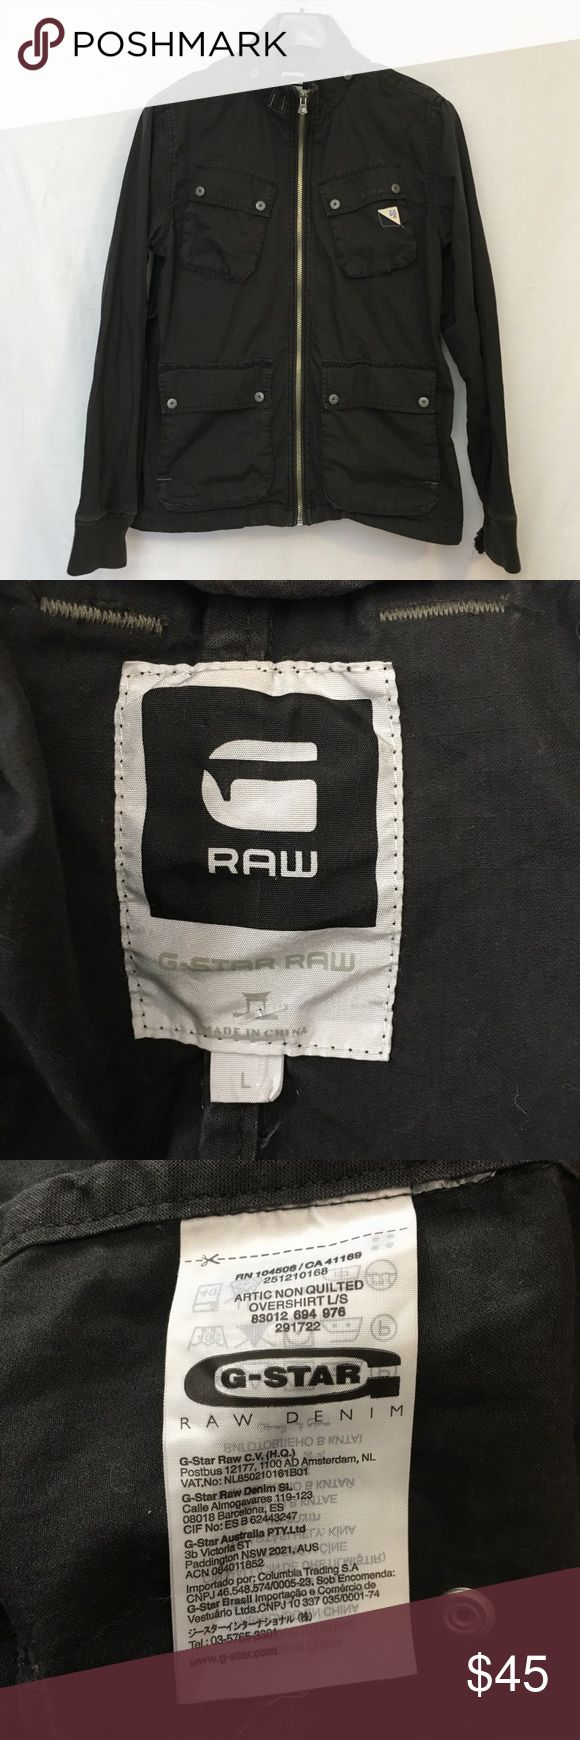 "G-STAR RAW Zip Utility Cotton Jacket Distressed G-STAR RAW Mens Dark Gray Zip Utility Cotton Jacket Distressed Size Large  100% Cotton. Medium weight. Lots of logo details. Distressed wash. Cuffs have thumb holes but one of cuffs needs some repair as seen in last two photos. Otherwise jacket is in excellent condition.  MEASUREMENTS  Length 27""  Sleeves 26""  Underarm to underarm 21""  Quick shipping! WE SHIP EITHER THE SAME BUSINESS DAY OR NEXT. ORDERS ON WEEKENDS ARE IN MAIL BY MONDAY…"